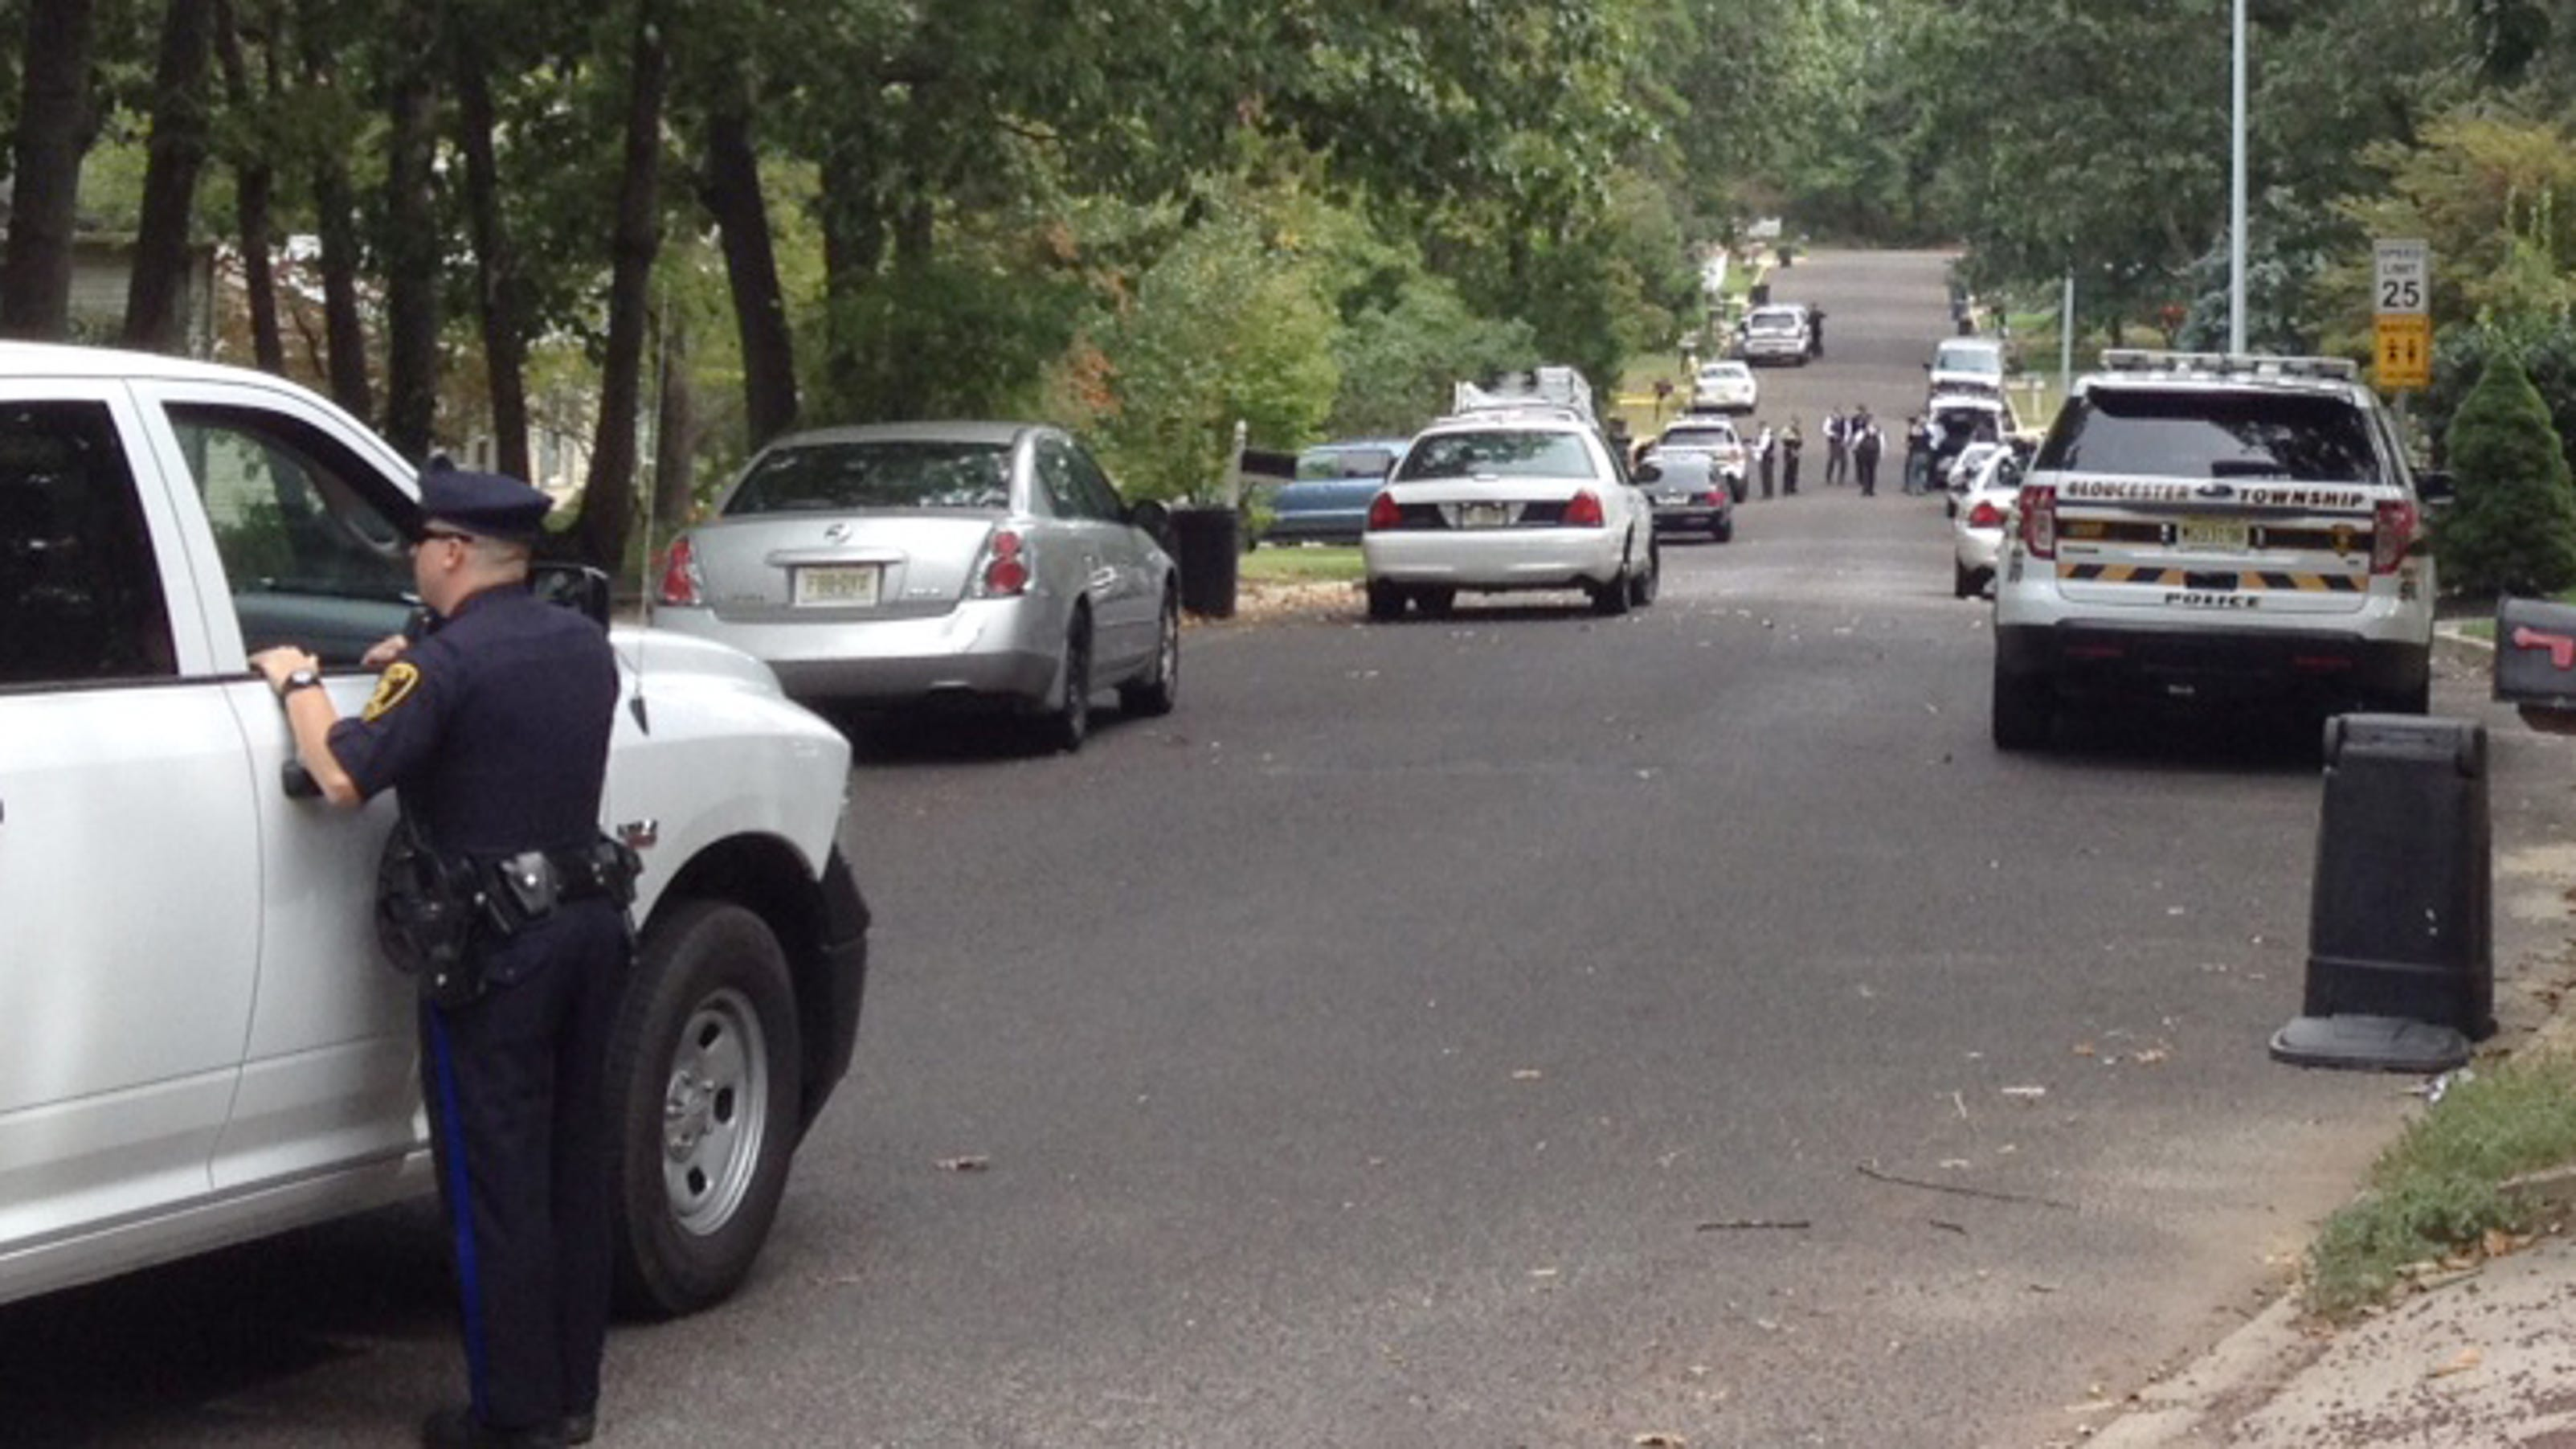 2 arrested after Gloucester Twp  home invasion - Cherry Hill